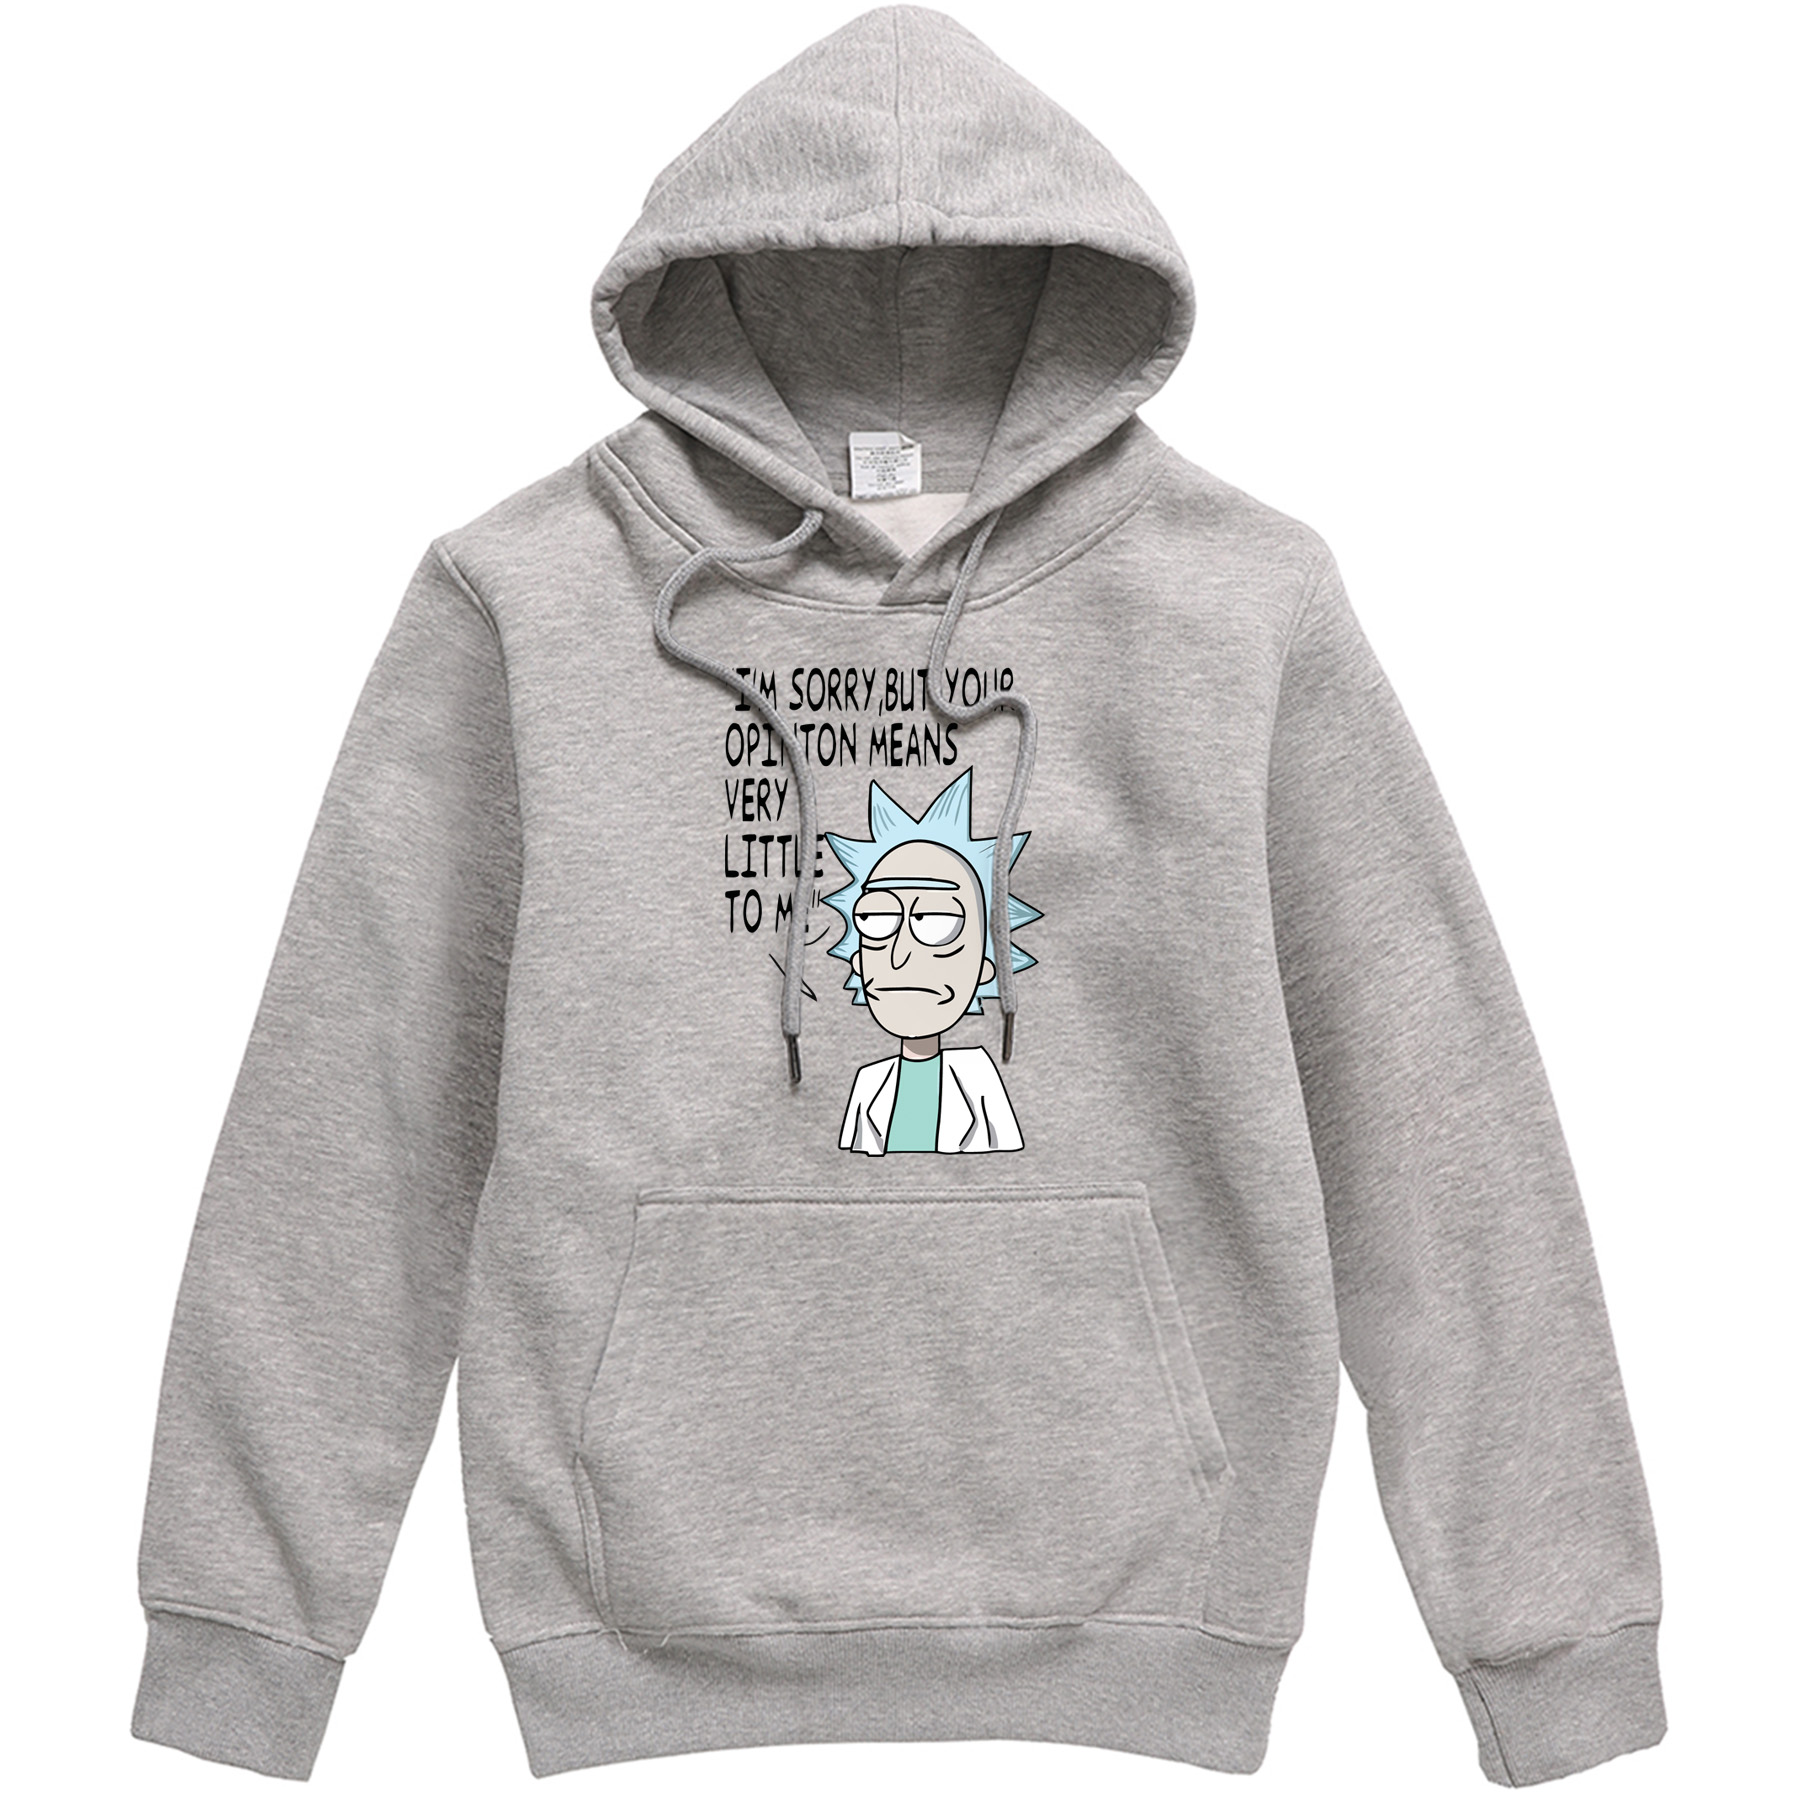 2019 Autumn Mens Hoodies Rick And Morty Male Brand Pullover Funny Cartoon Men's Streetwear Sweatshirts Casual Hip Hop Tracksuits